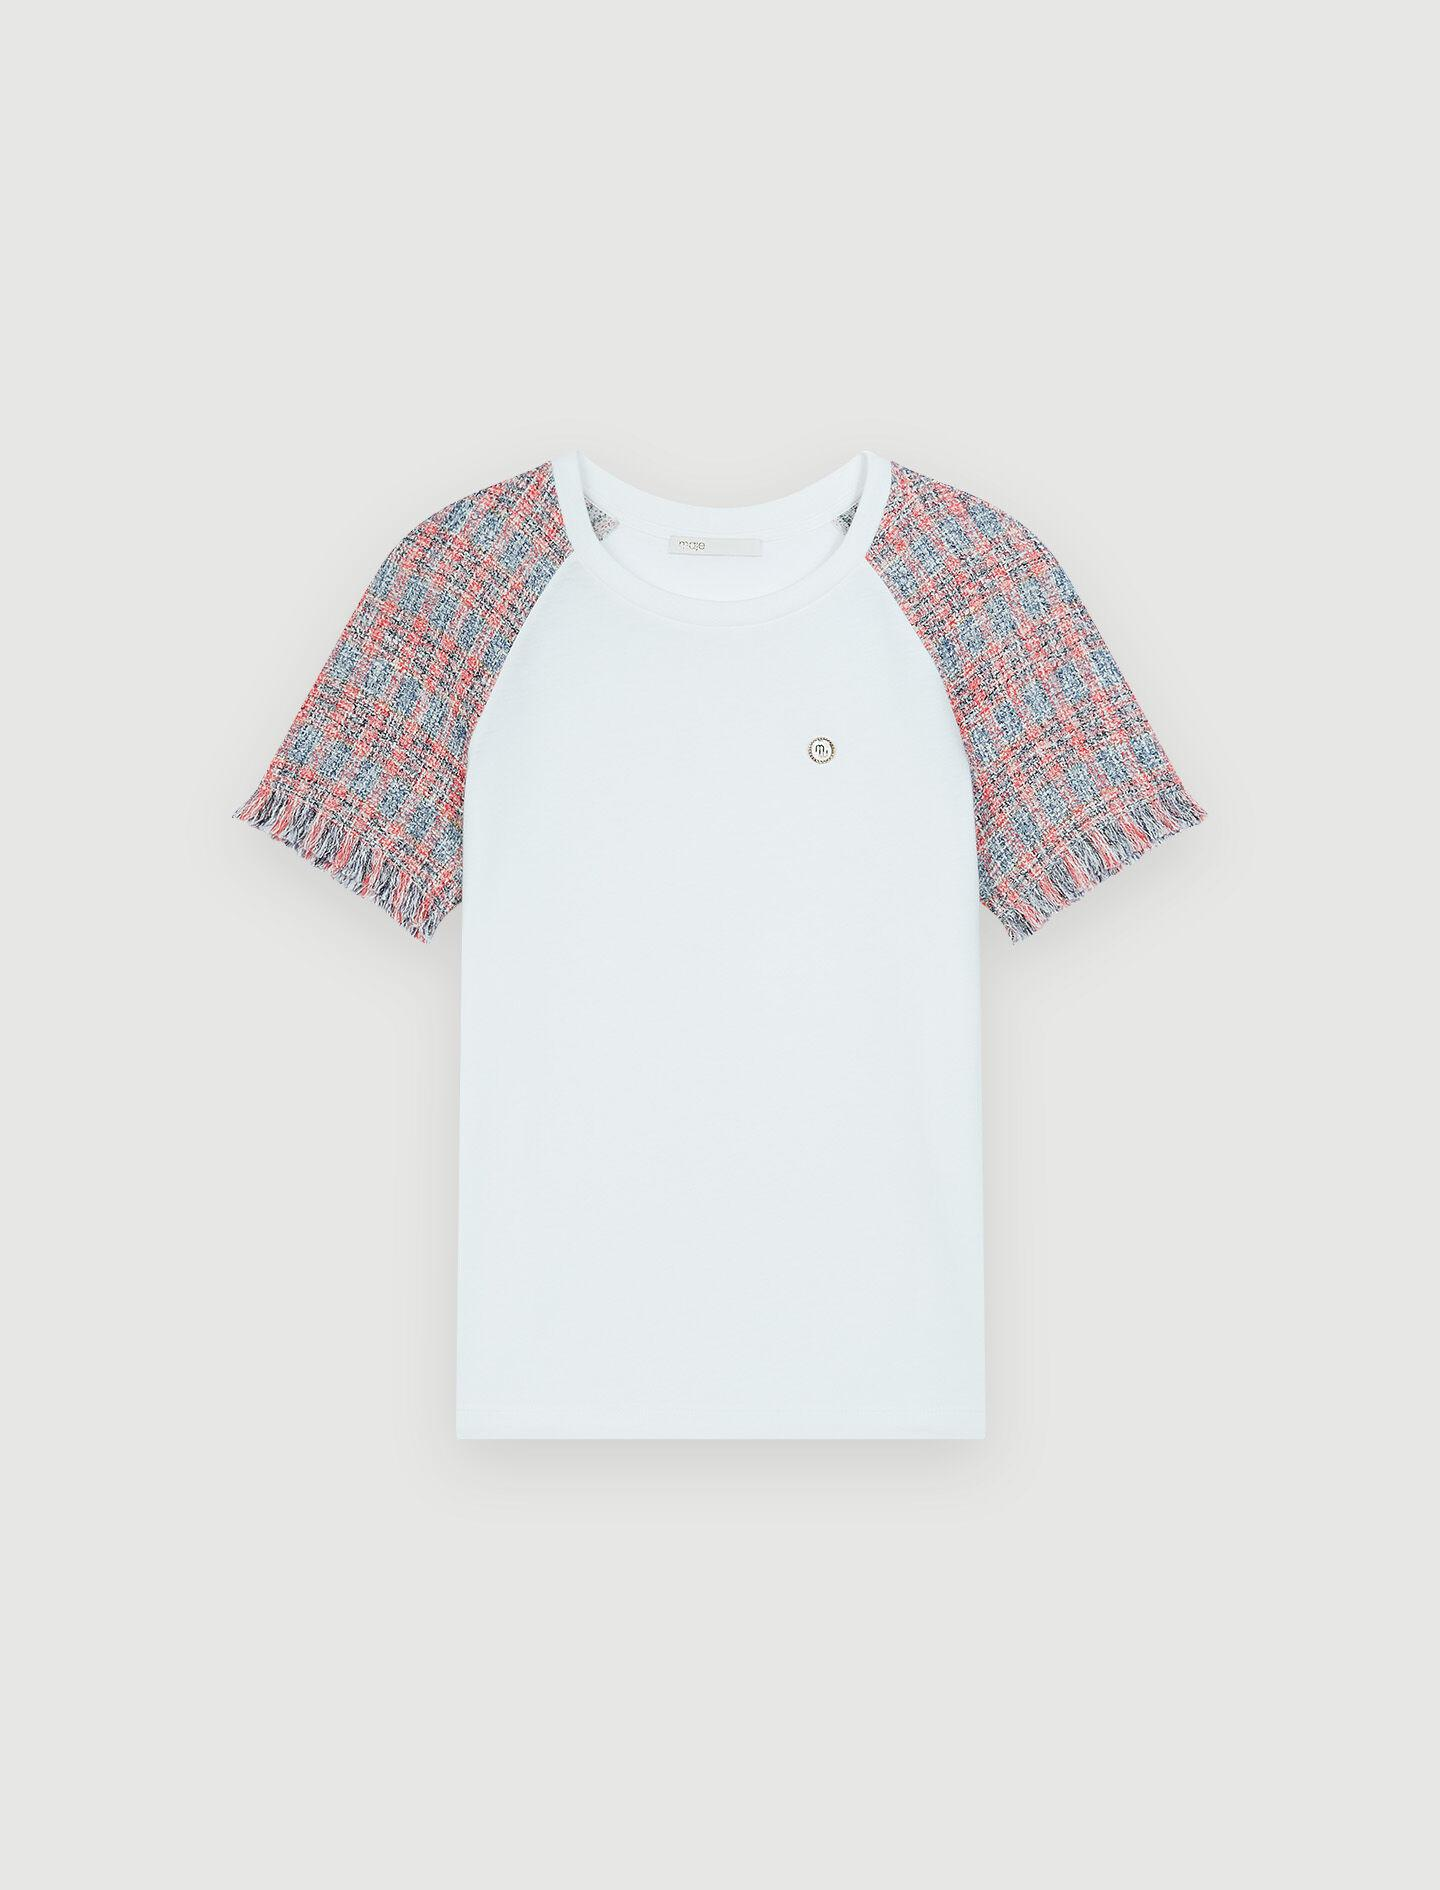 JERSEY T-SHIRT WITH TWEED SLEEVES 4